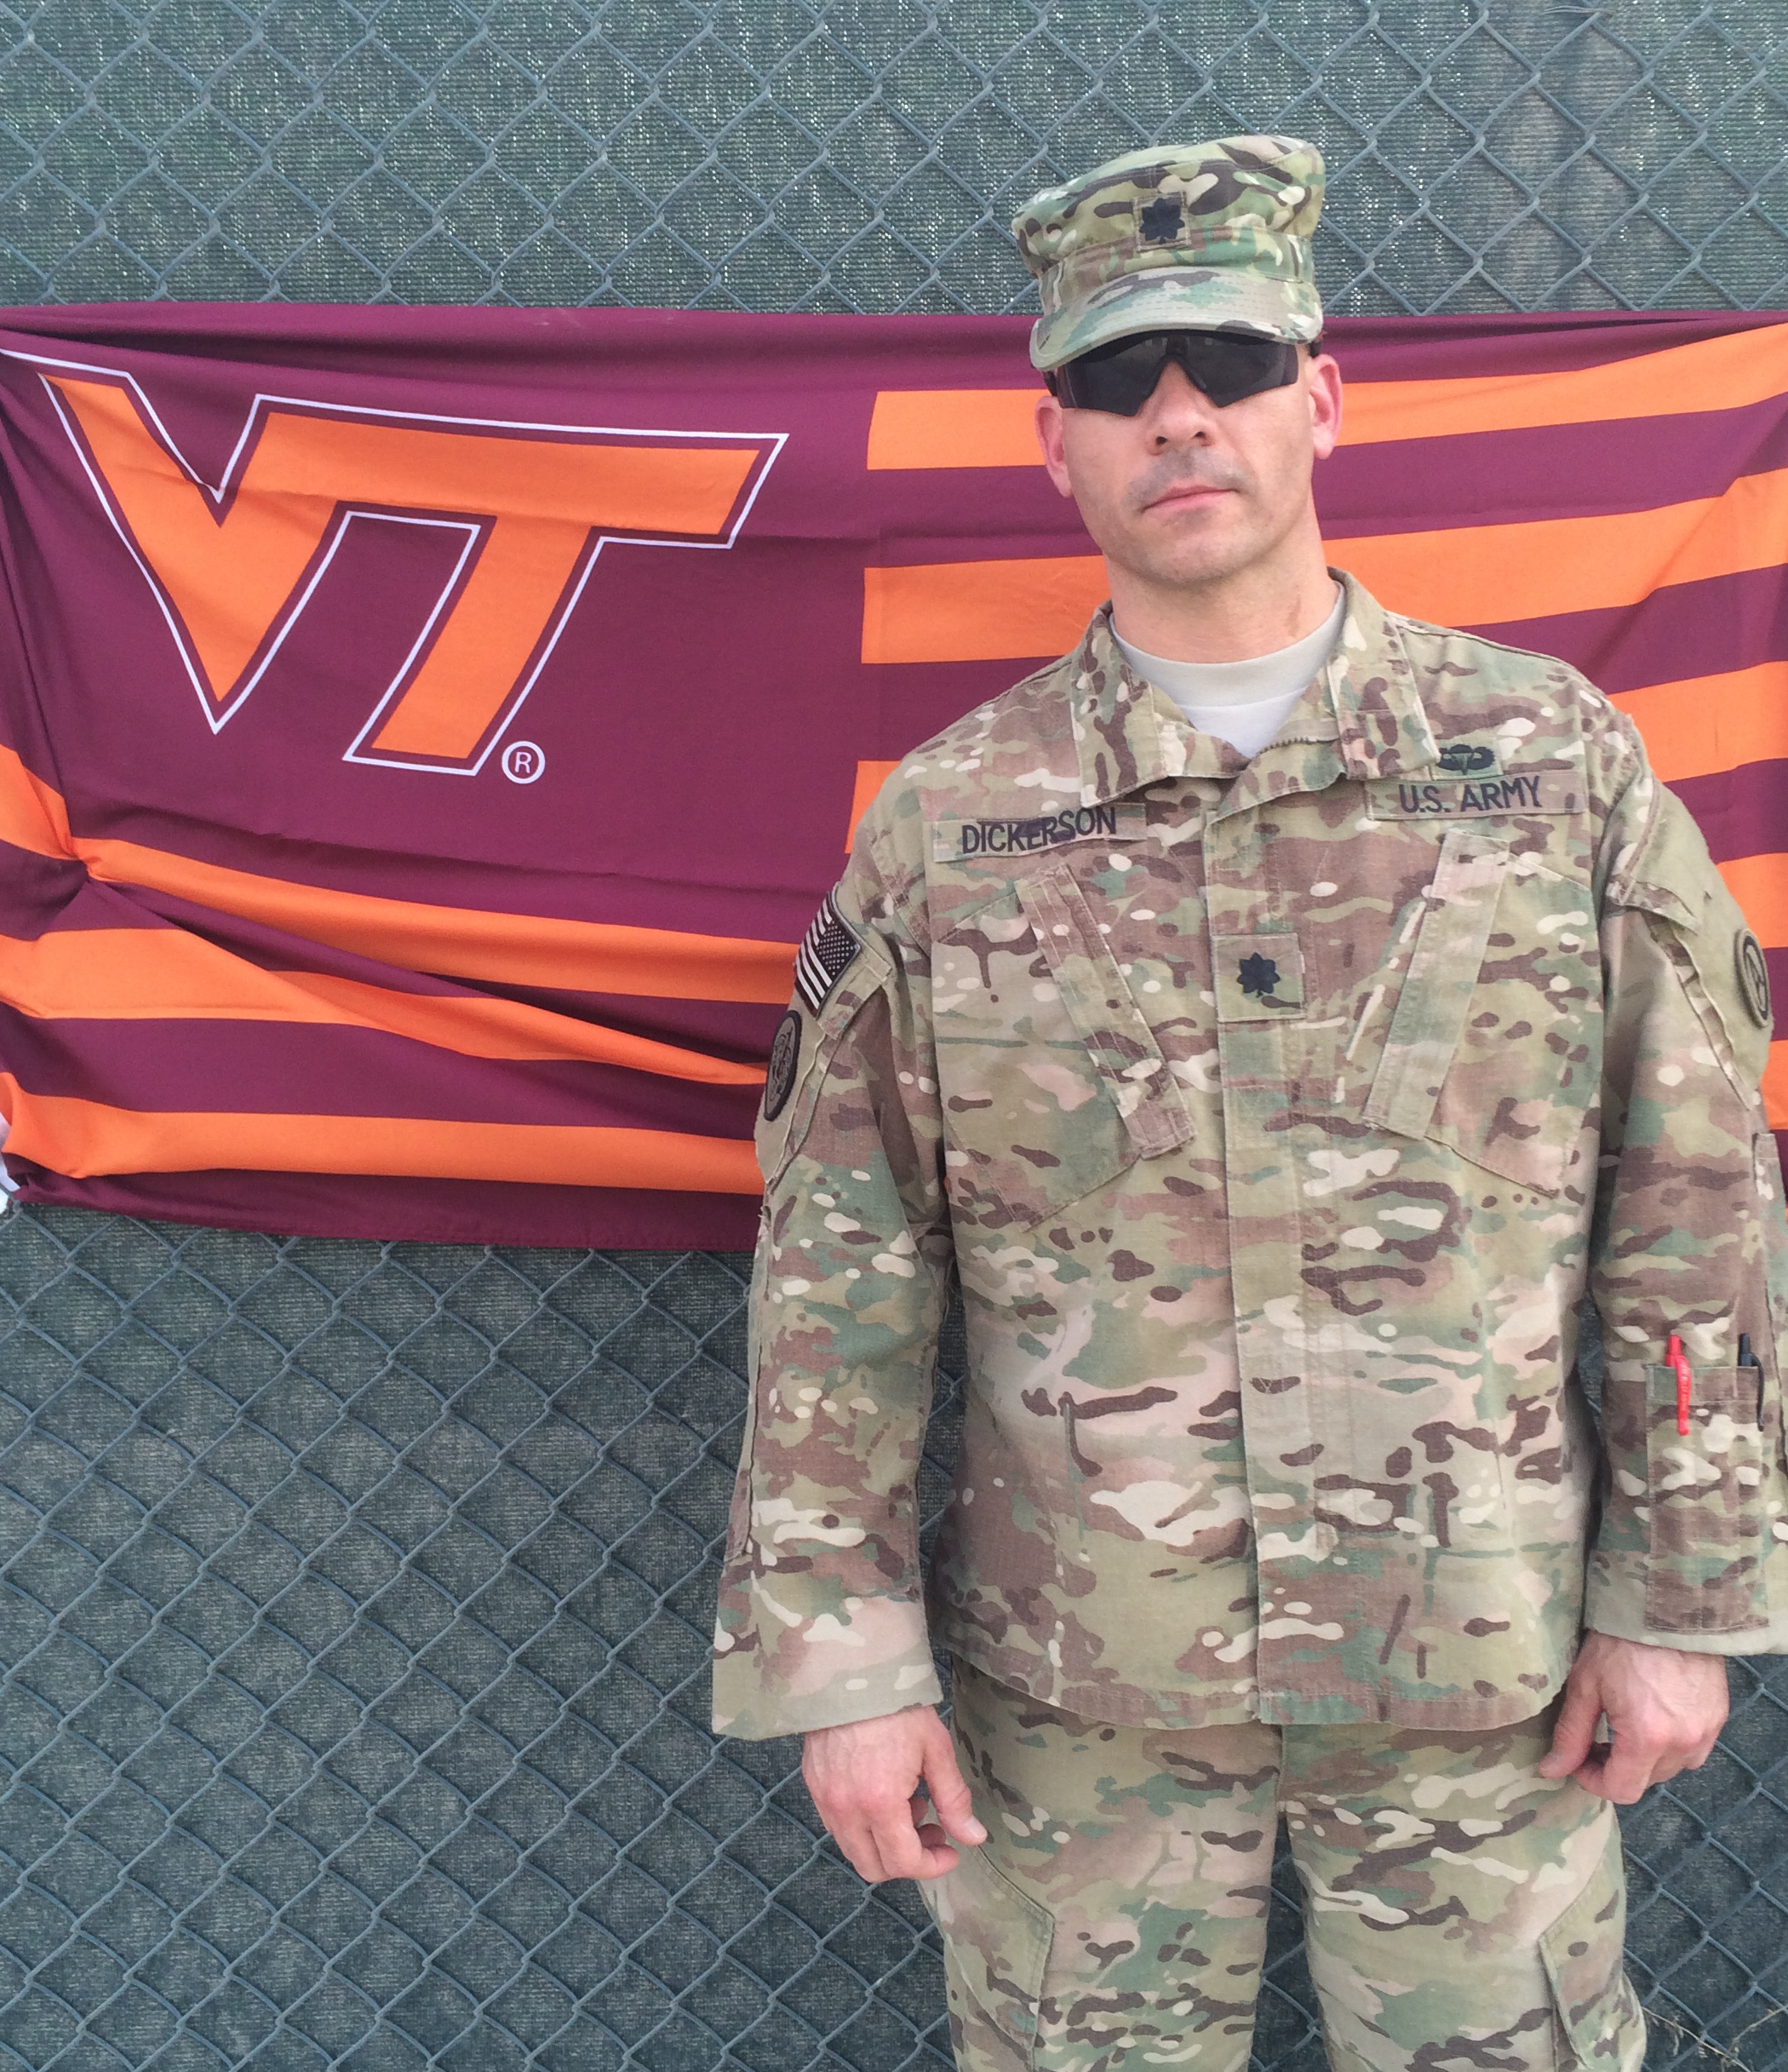 Lt. Col. Kelly Dickerson, U.S. Army, Virginia Tech Corps of Cadets Class of 1995 in front of a VT flag.